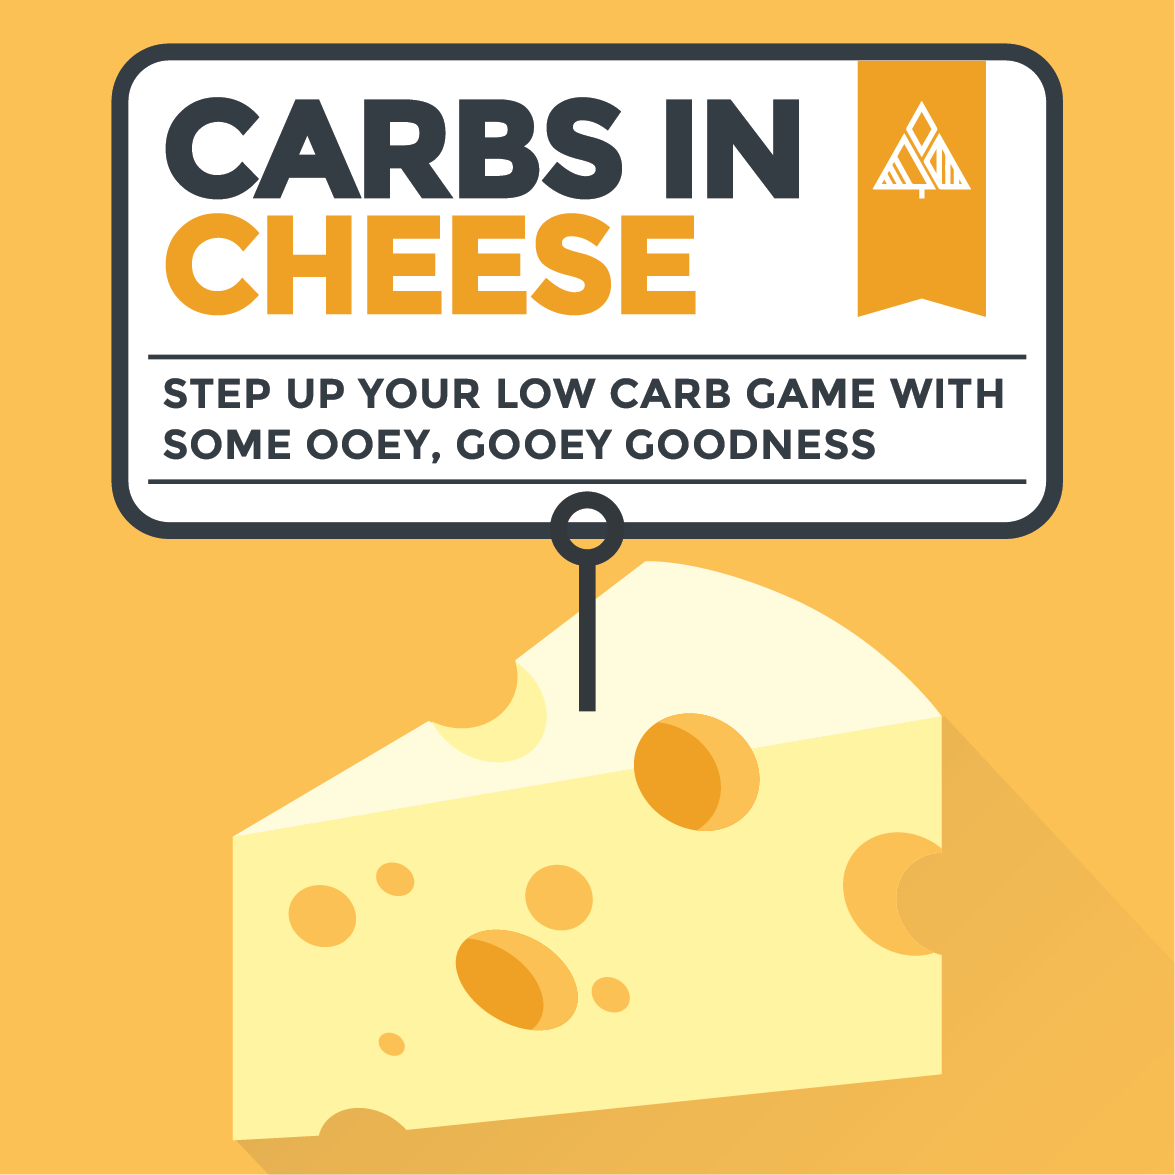 The lack of carbs in cheese are a delicious way to add some ooey, gooey goodness to your next low carb meal! Check out our list of the lowest carb/highest protein cheeses! #lowcarb #keto #glutenfree #grainfree #healthy #recipe #list #paleo #protein #fat #vitamins #minerals #cheesebenefits #americancheese #briecheese #asiagocheese #cheddarcheese #colbycheese #fetacheese #mozzarellacheese